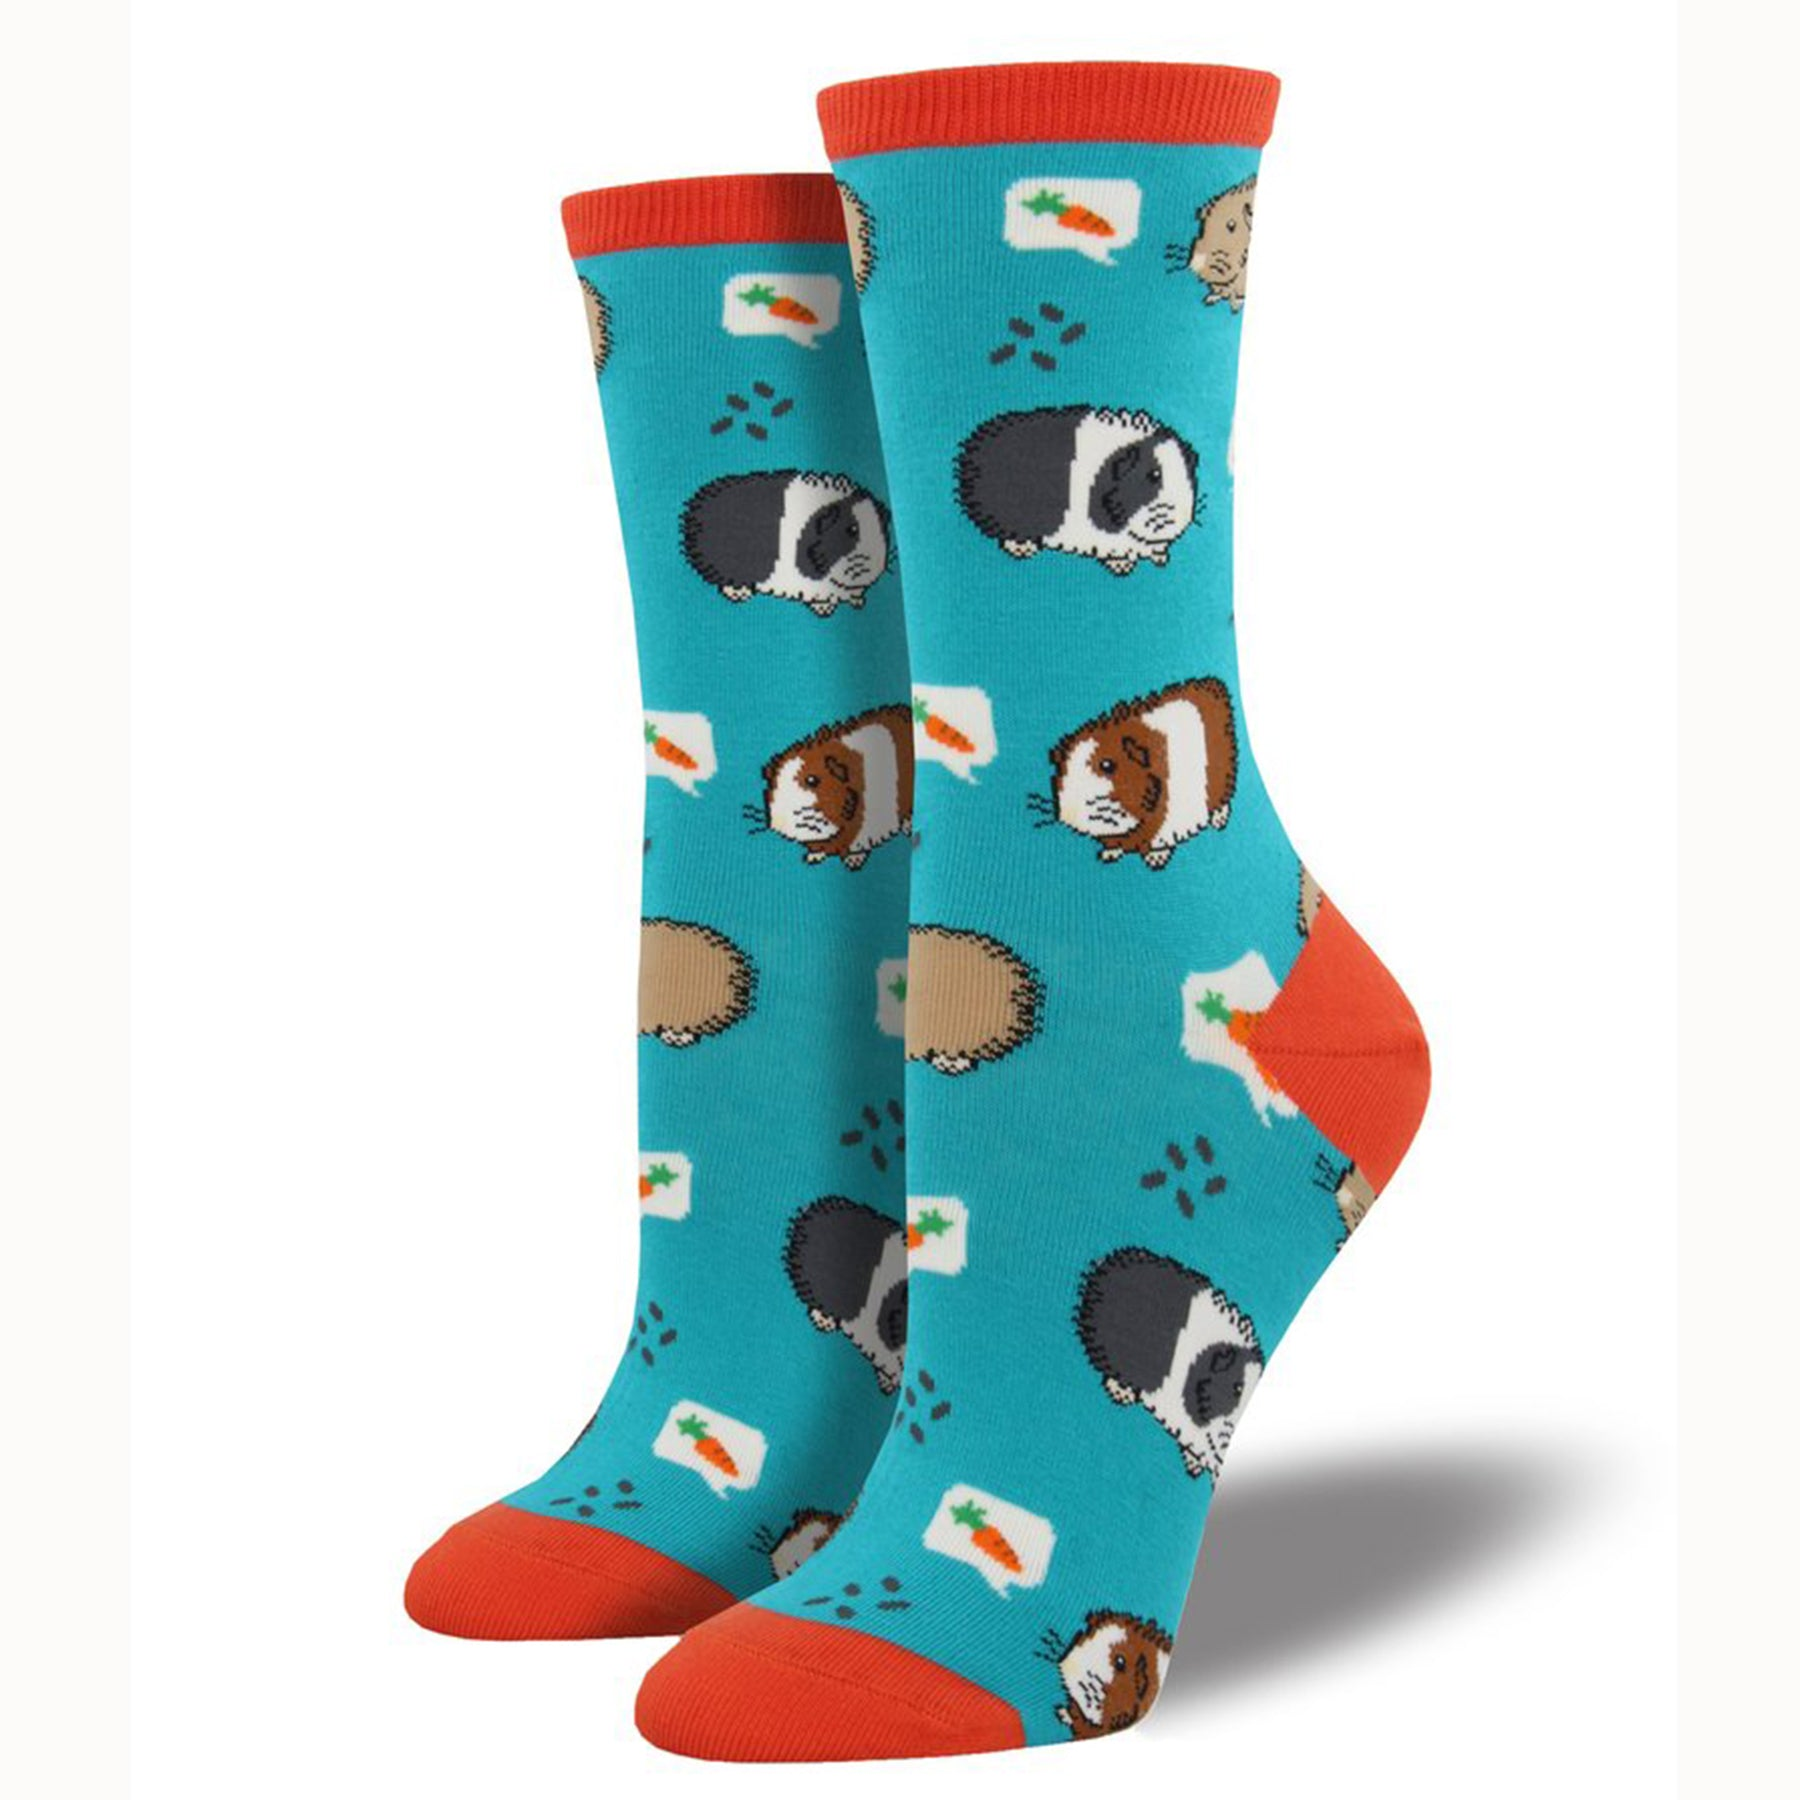 Socksmith Women's Guinea Pigs Casual Socks